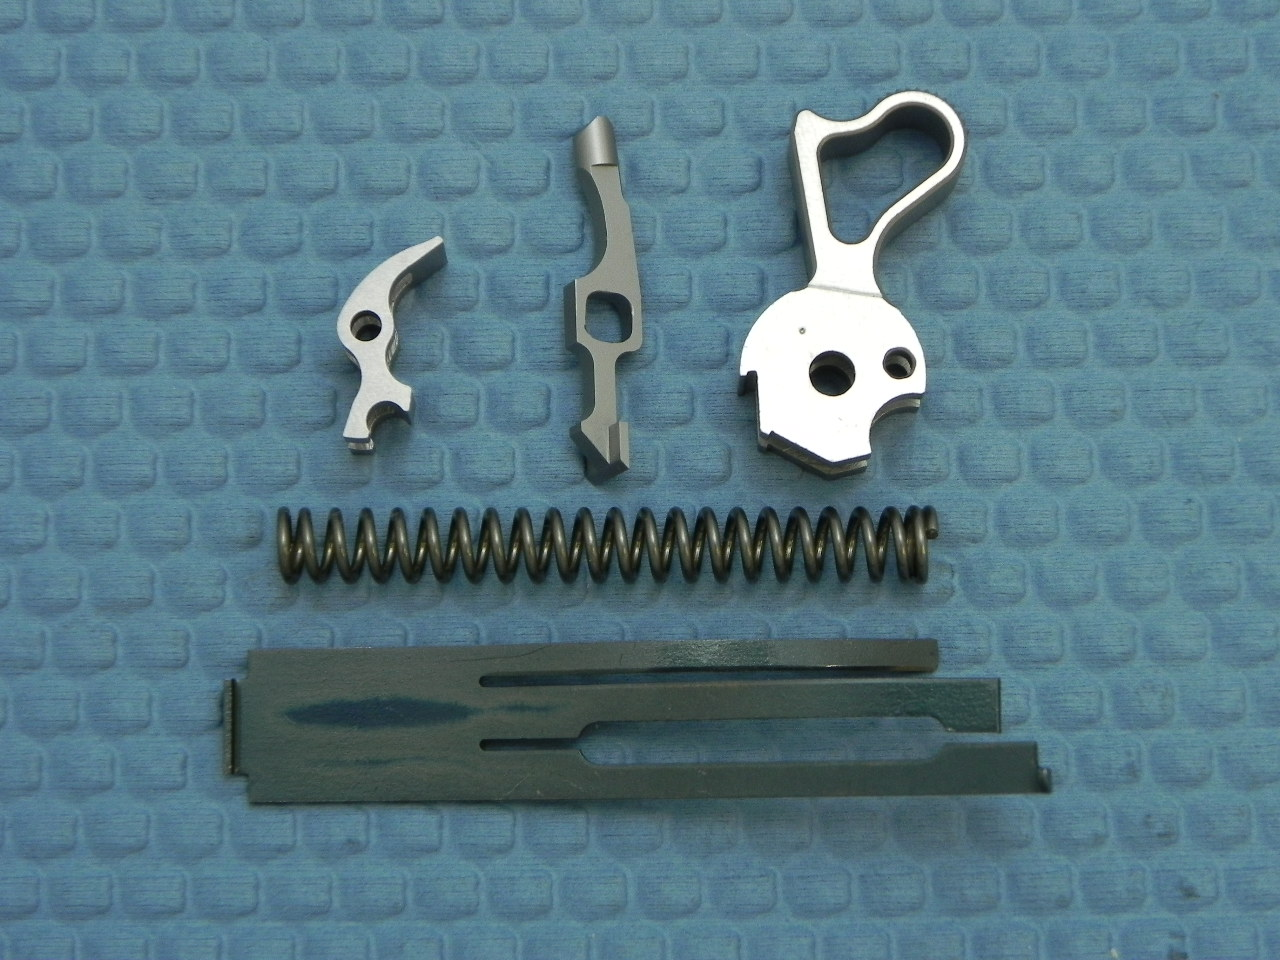 CS0226 - 1911 Ultra Match 3.5 lb. Trigger Pull (5 piece) Set